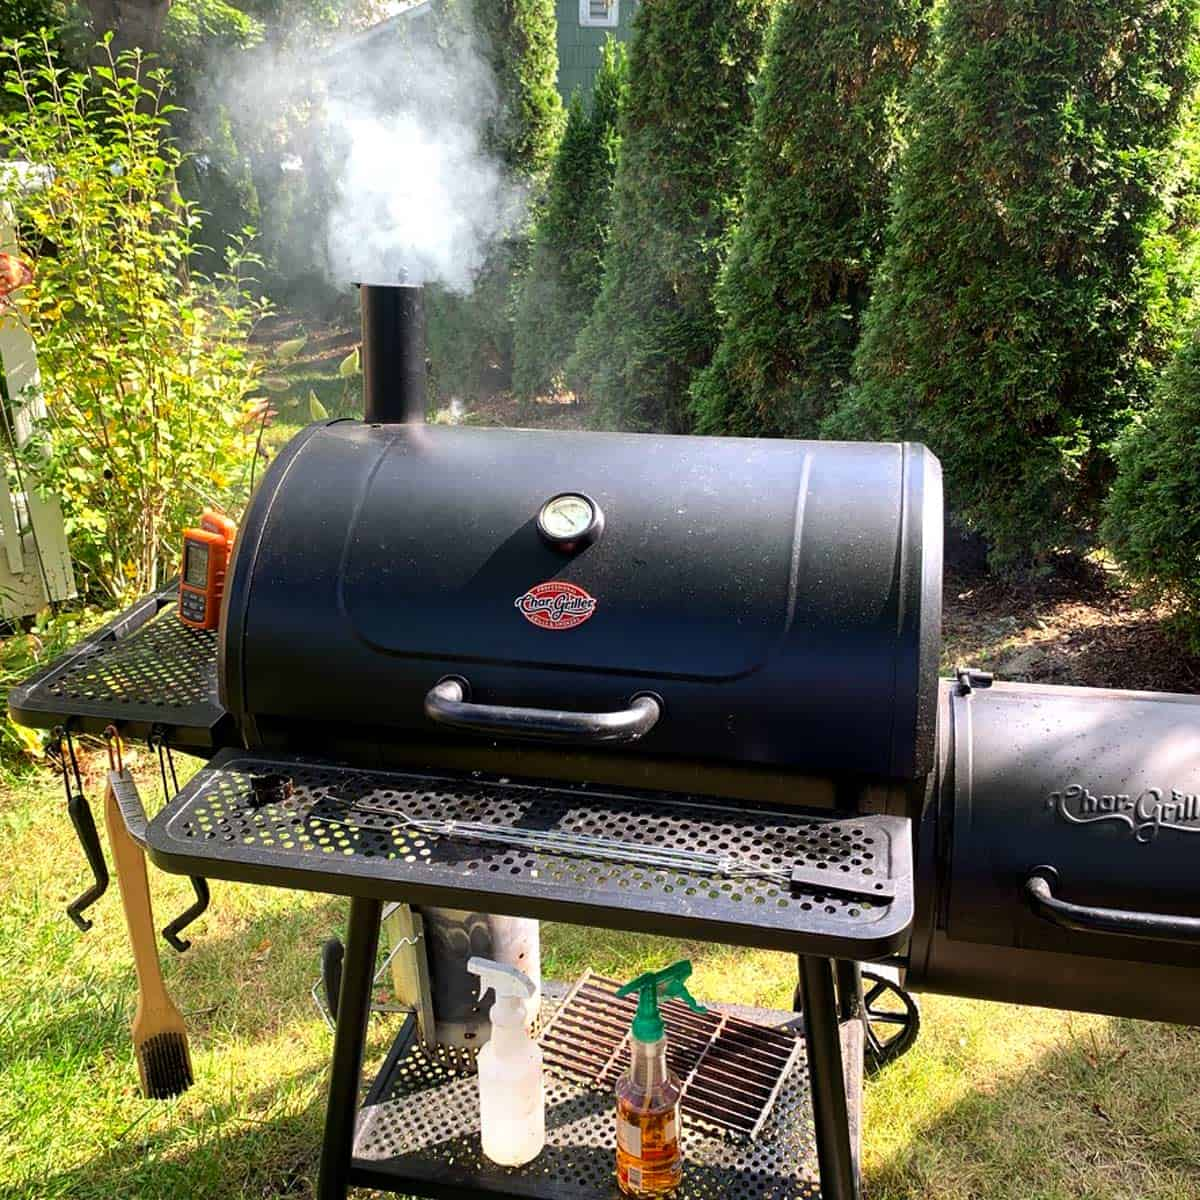 An offset smoker for making smoked meat and fish.